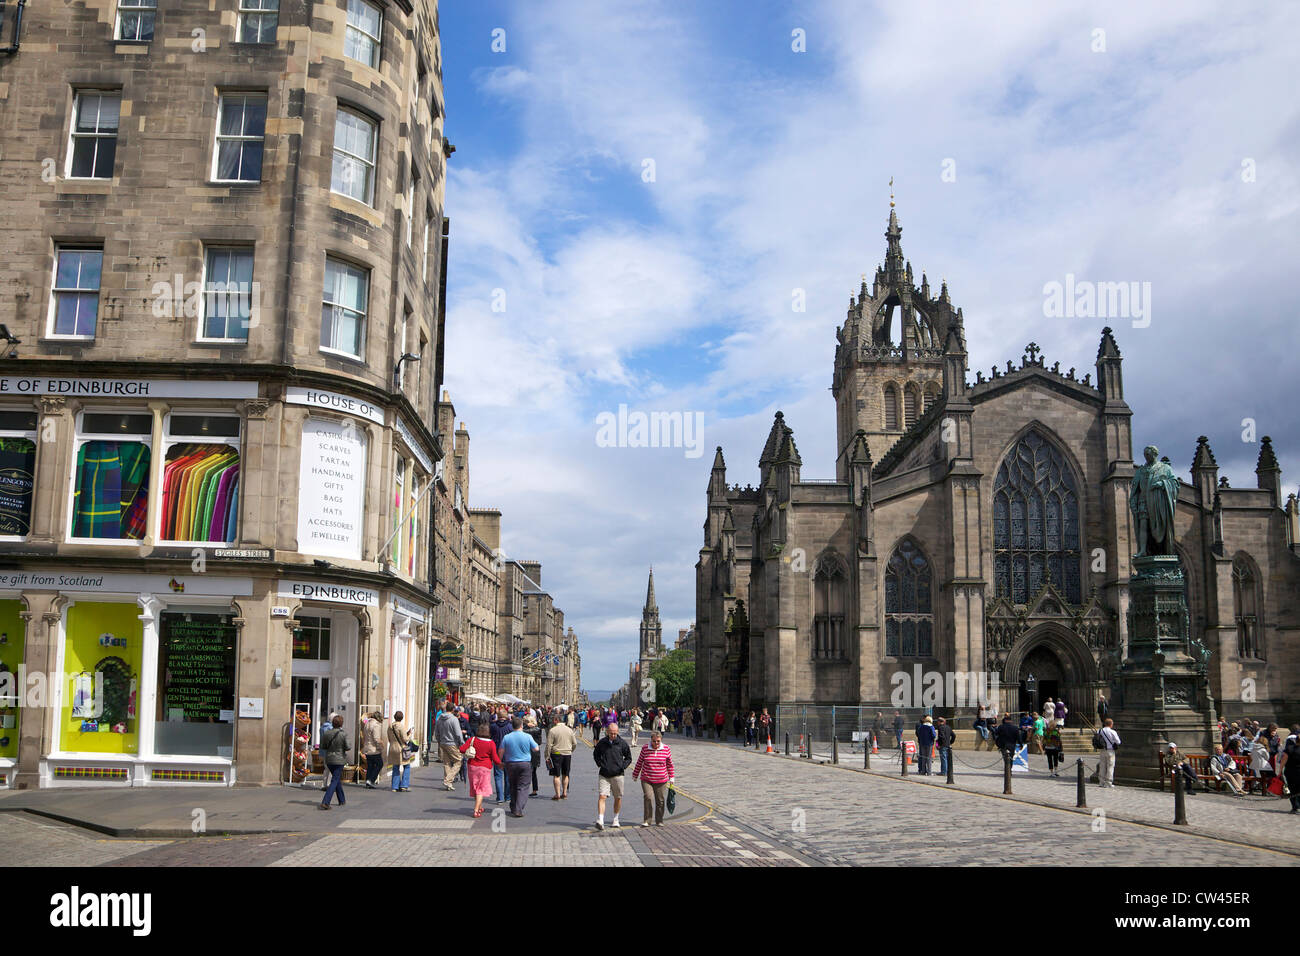 St Giles Cathedral and the Royal Mile, Old town, Edinburgh, Scotland, UK, GB, British Isles, Europe - Stock Image